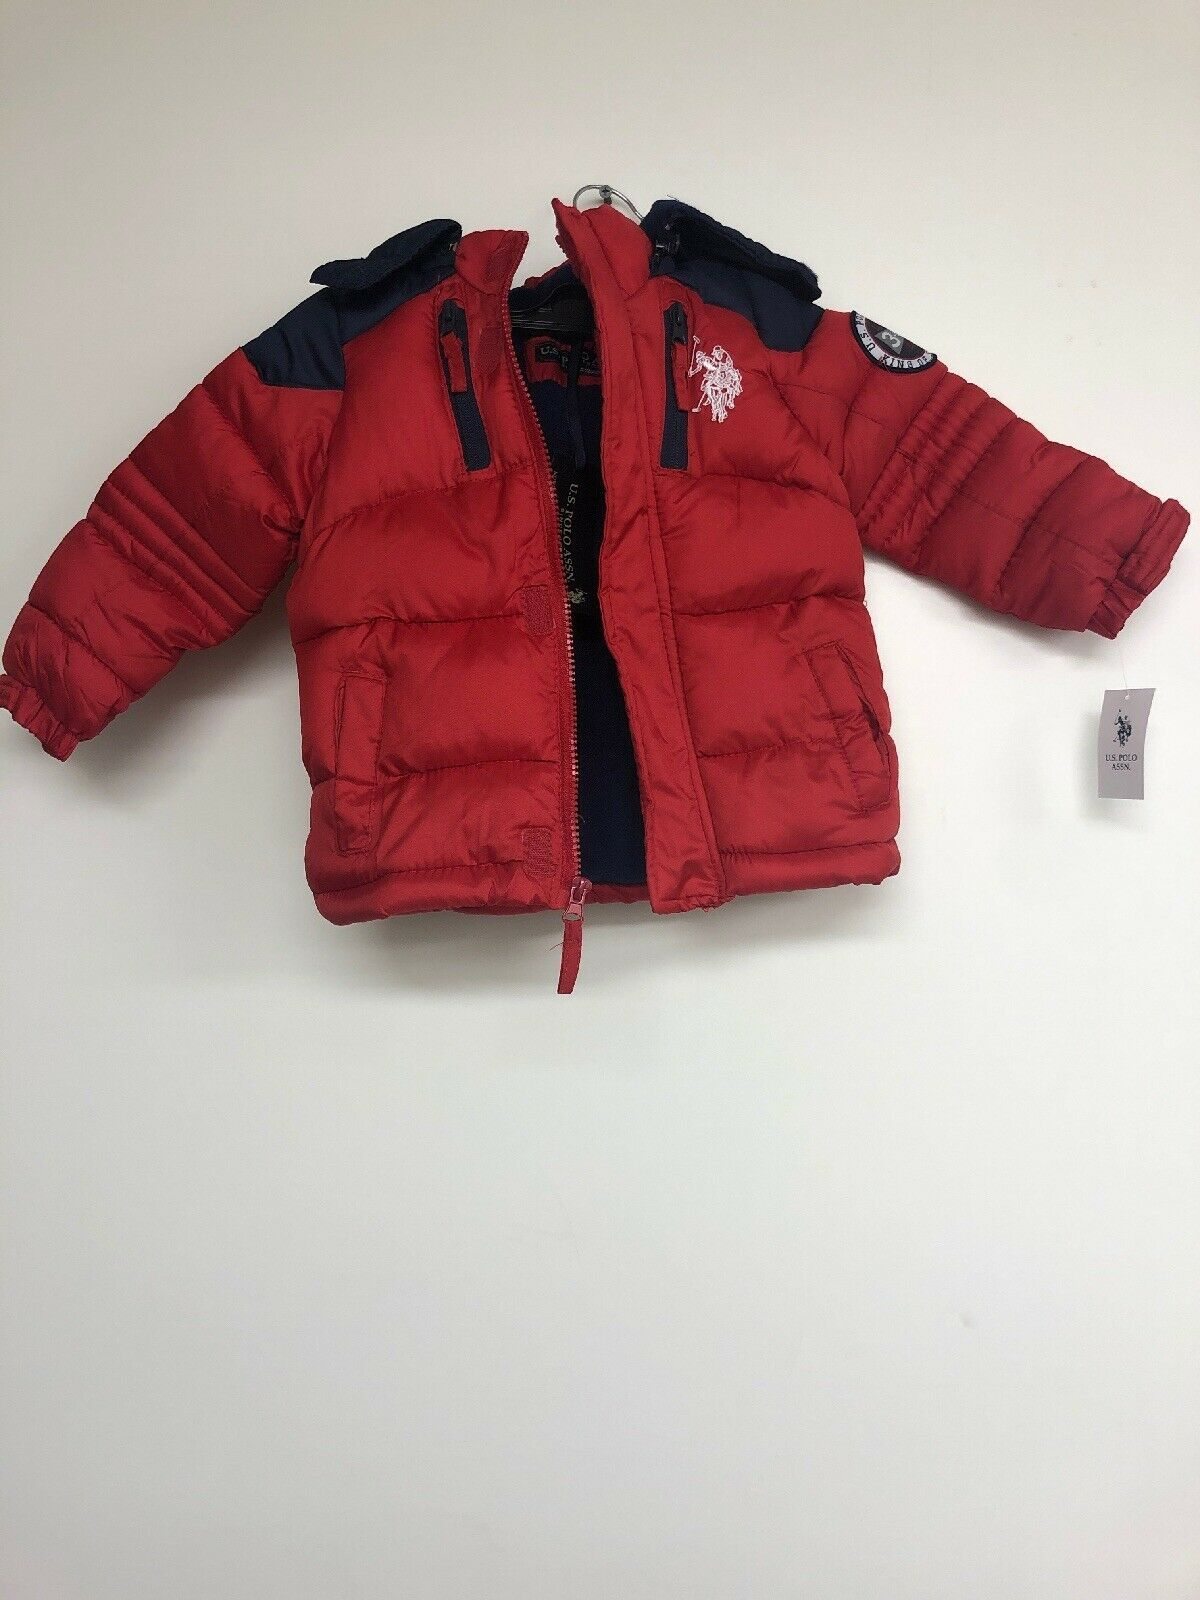 Primary image for U.S. Polo Assn. Boys Bubble Jacket, Winning Red Blue, 2T